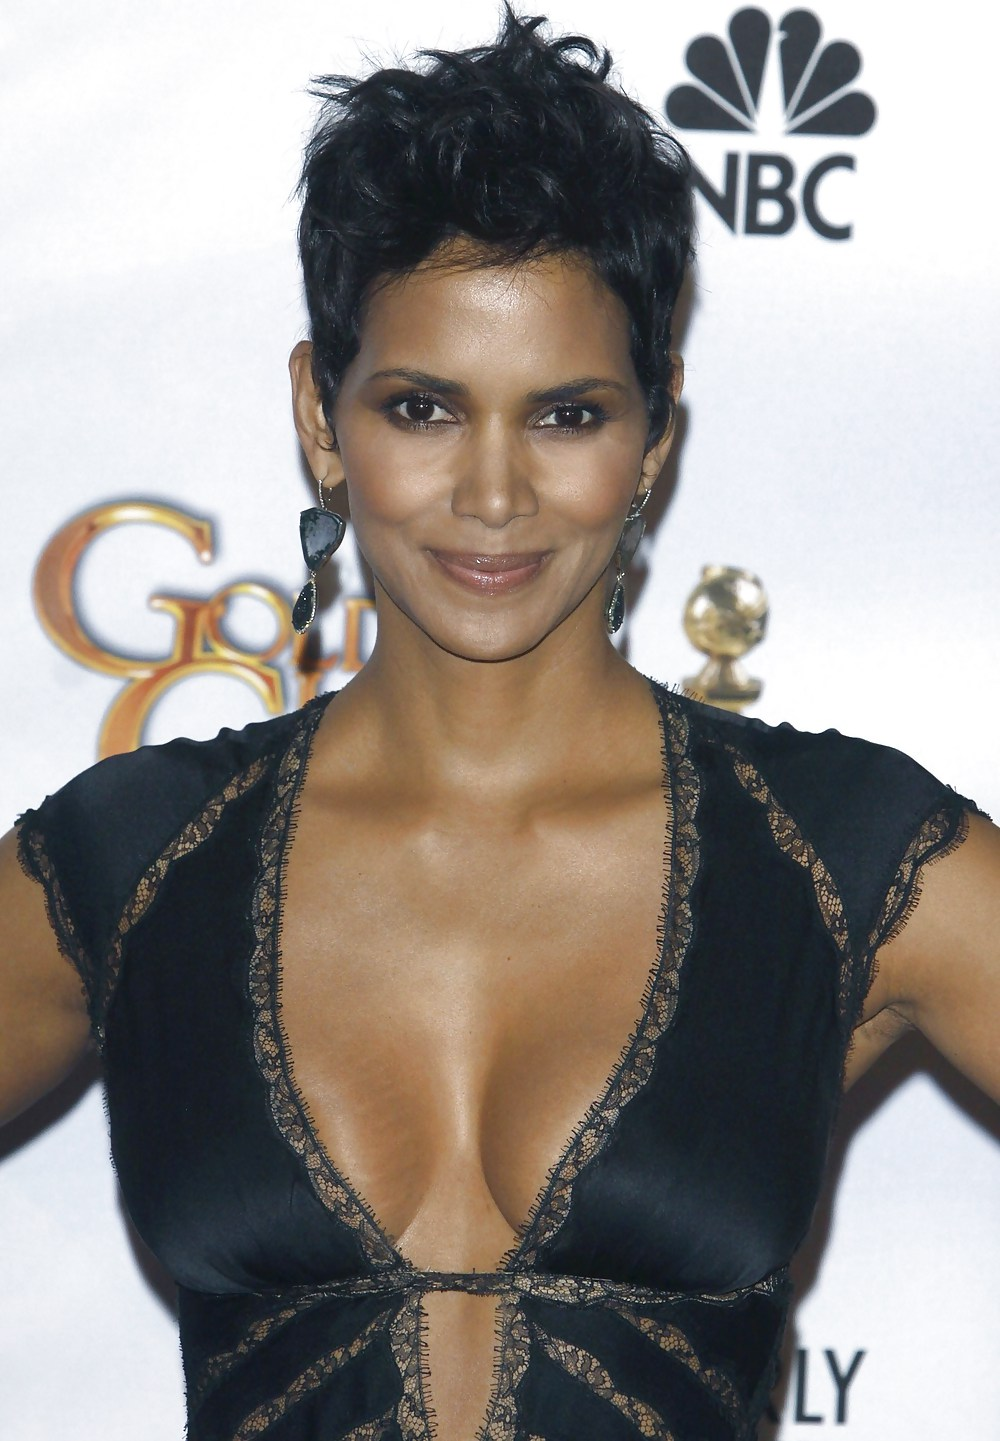 Halle berry performs oral se — pic 15